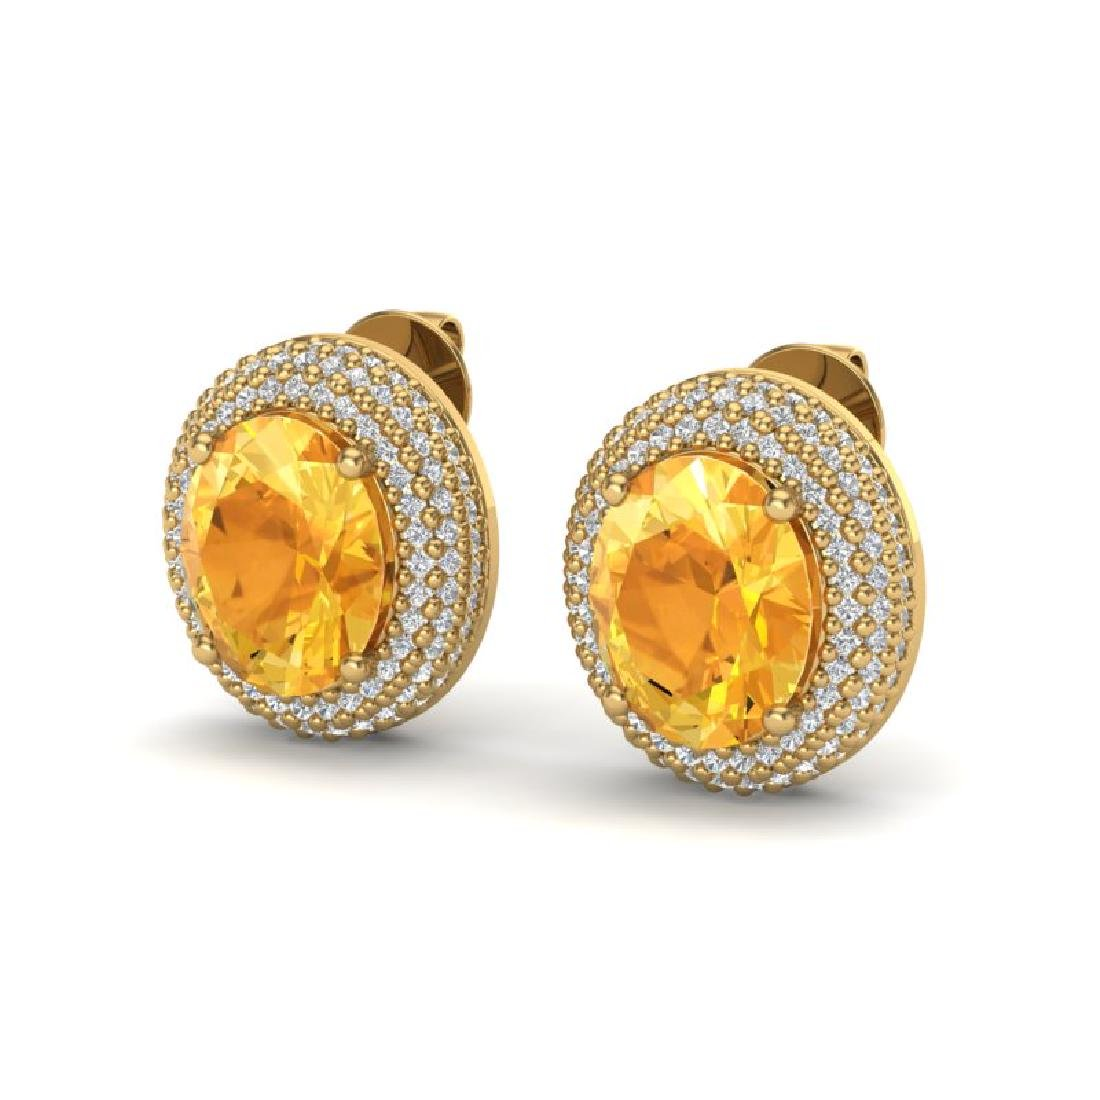 8 CTW Citrine & Micro Pave VS/SI Diamond Earrings 18K